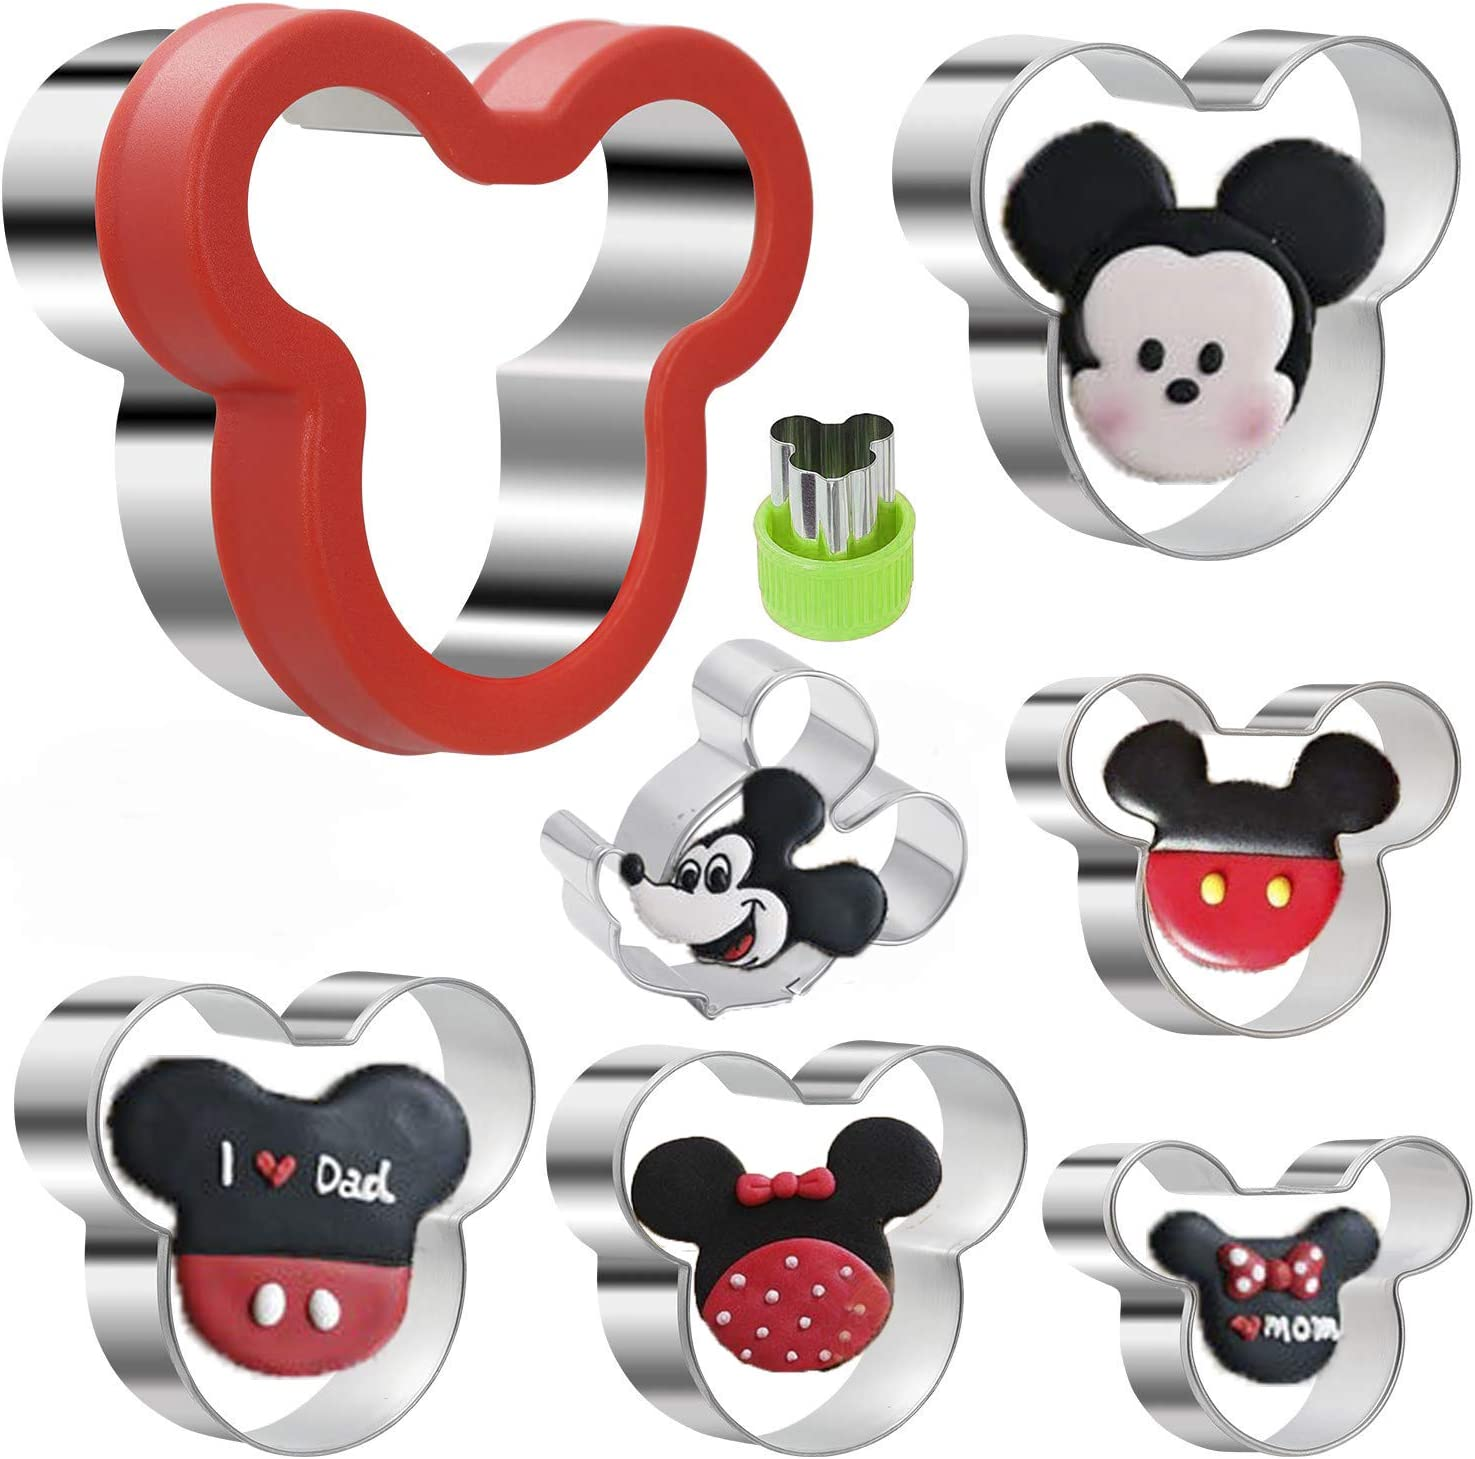 KAISHANE Mickey Mouse Cookie Cutter Set,Stainless Steel Sandwich Cutter Set Mickey Mouse Cookie Vegetable Fruit Cutter Biscuit Mold for Baking